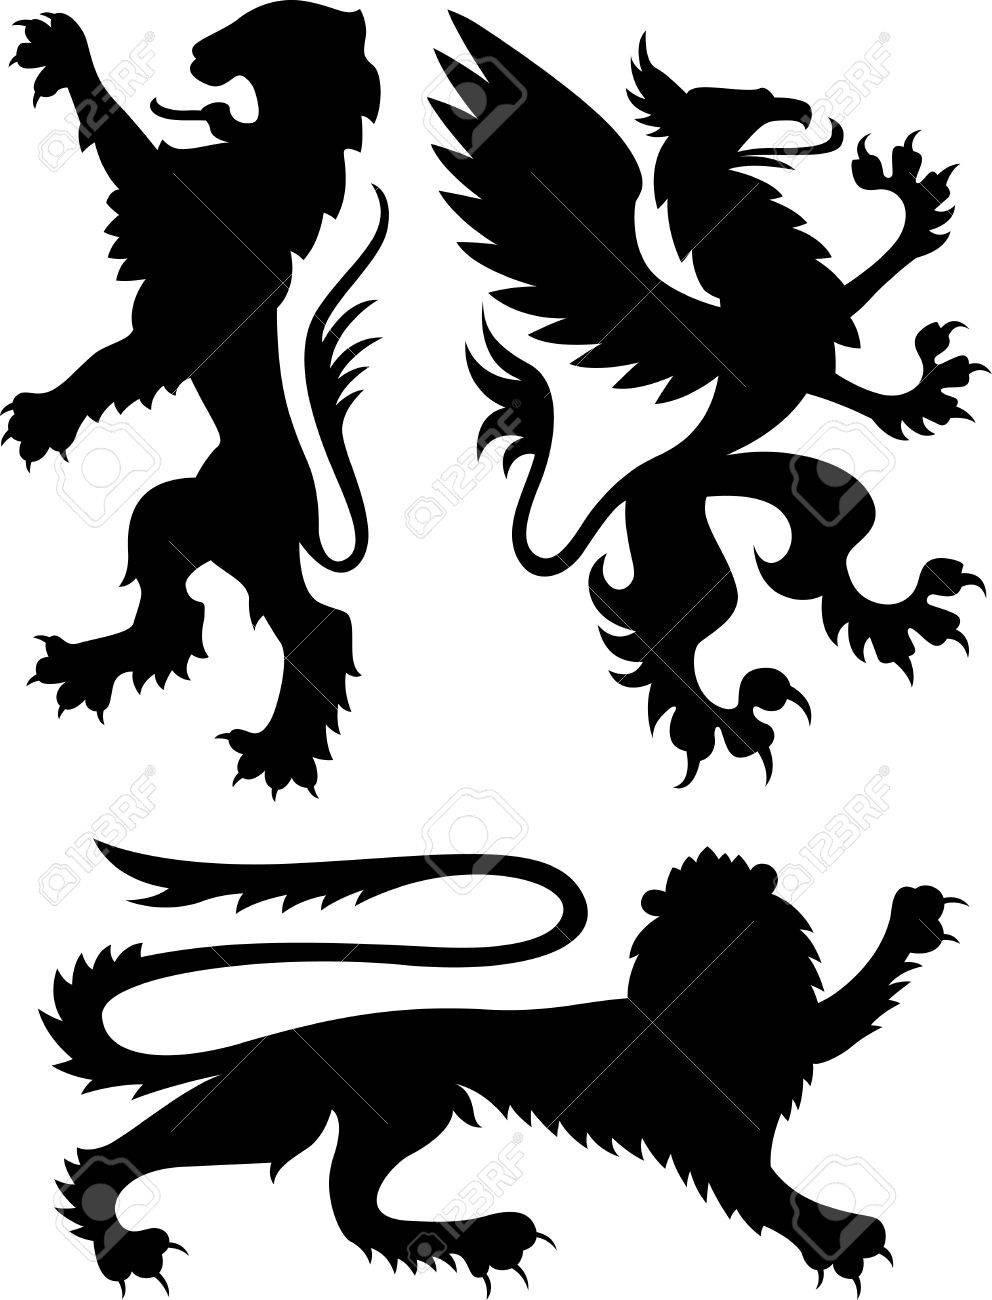 heraldic griffin design royalty free cliparts vectors and stock